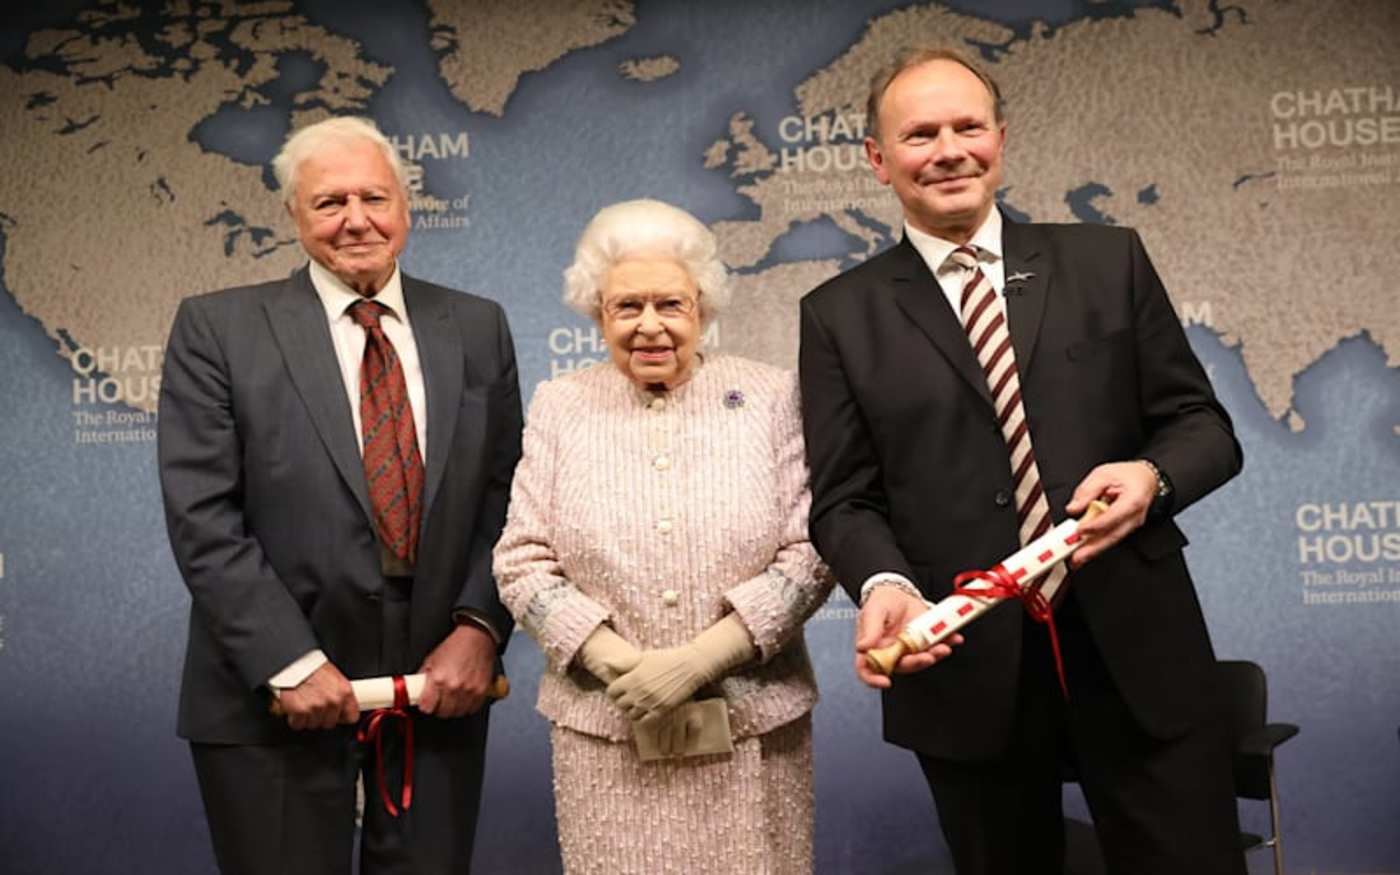 David Attenborough, the Queen and another gentleman stood in front of a large map